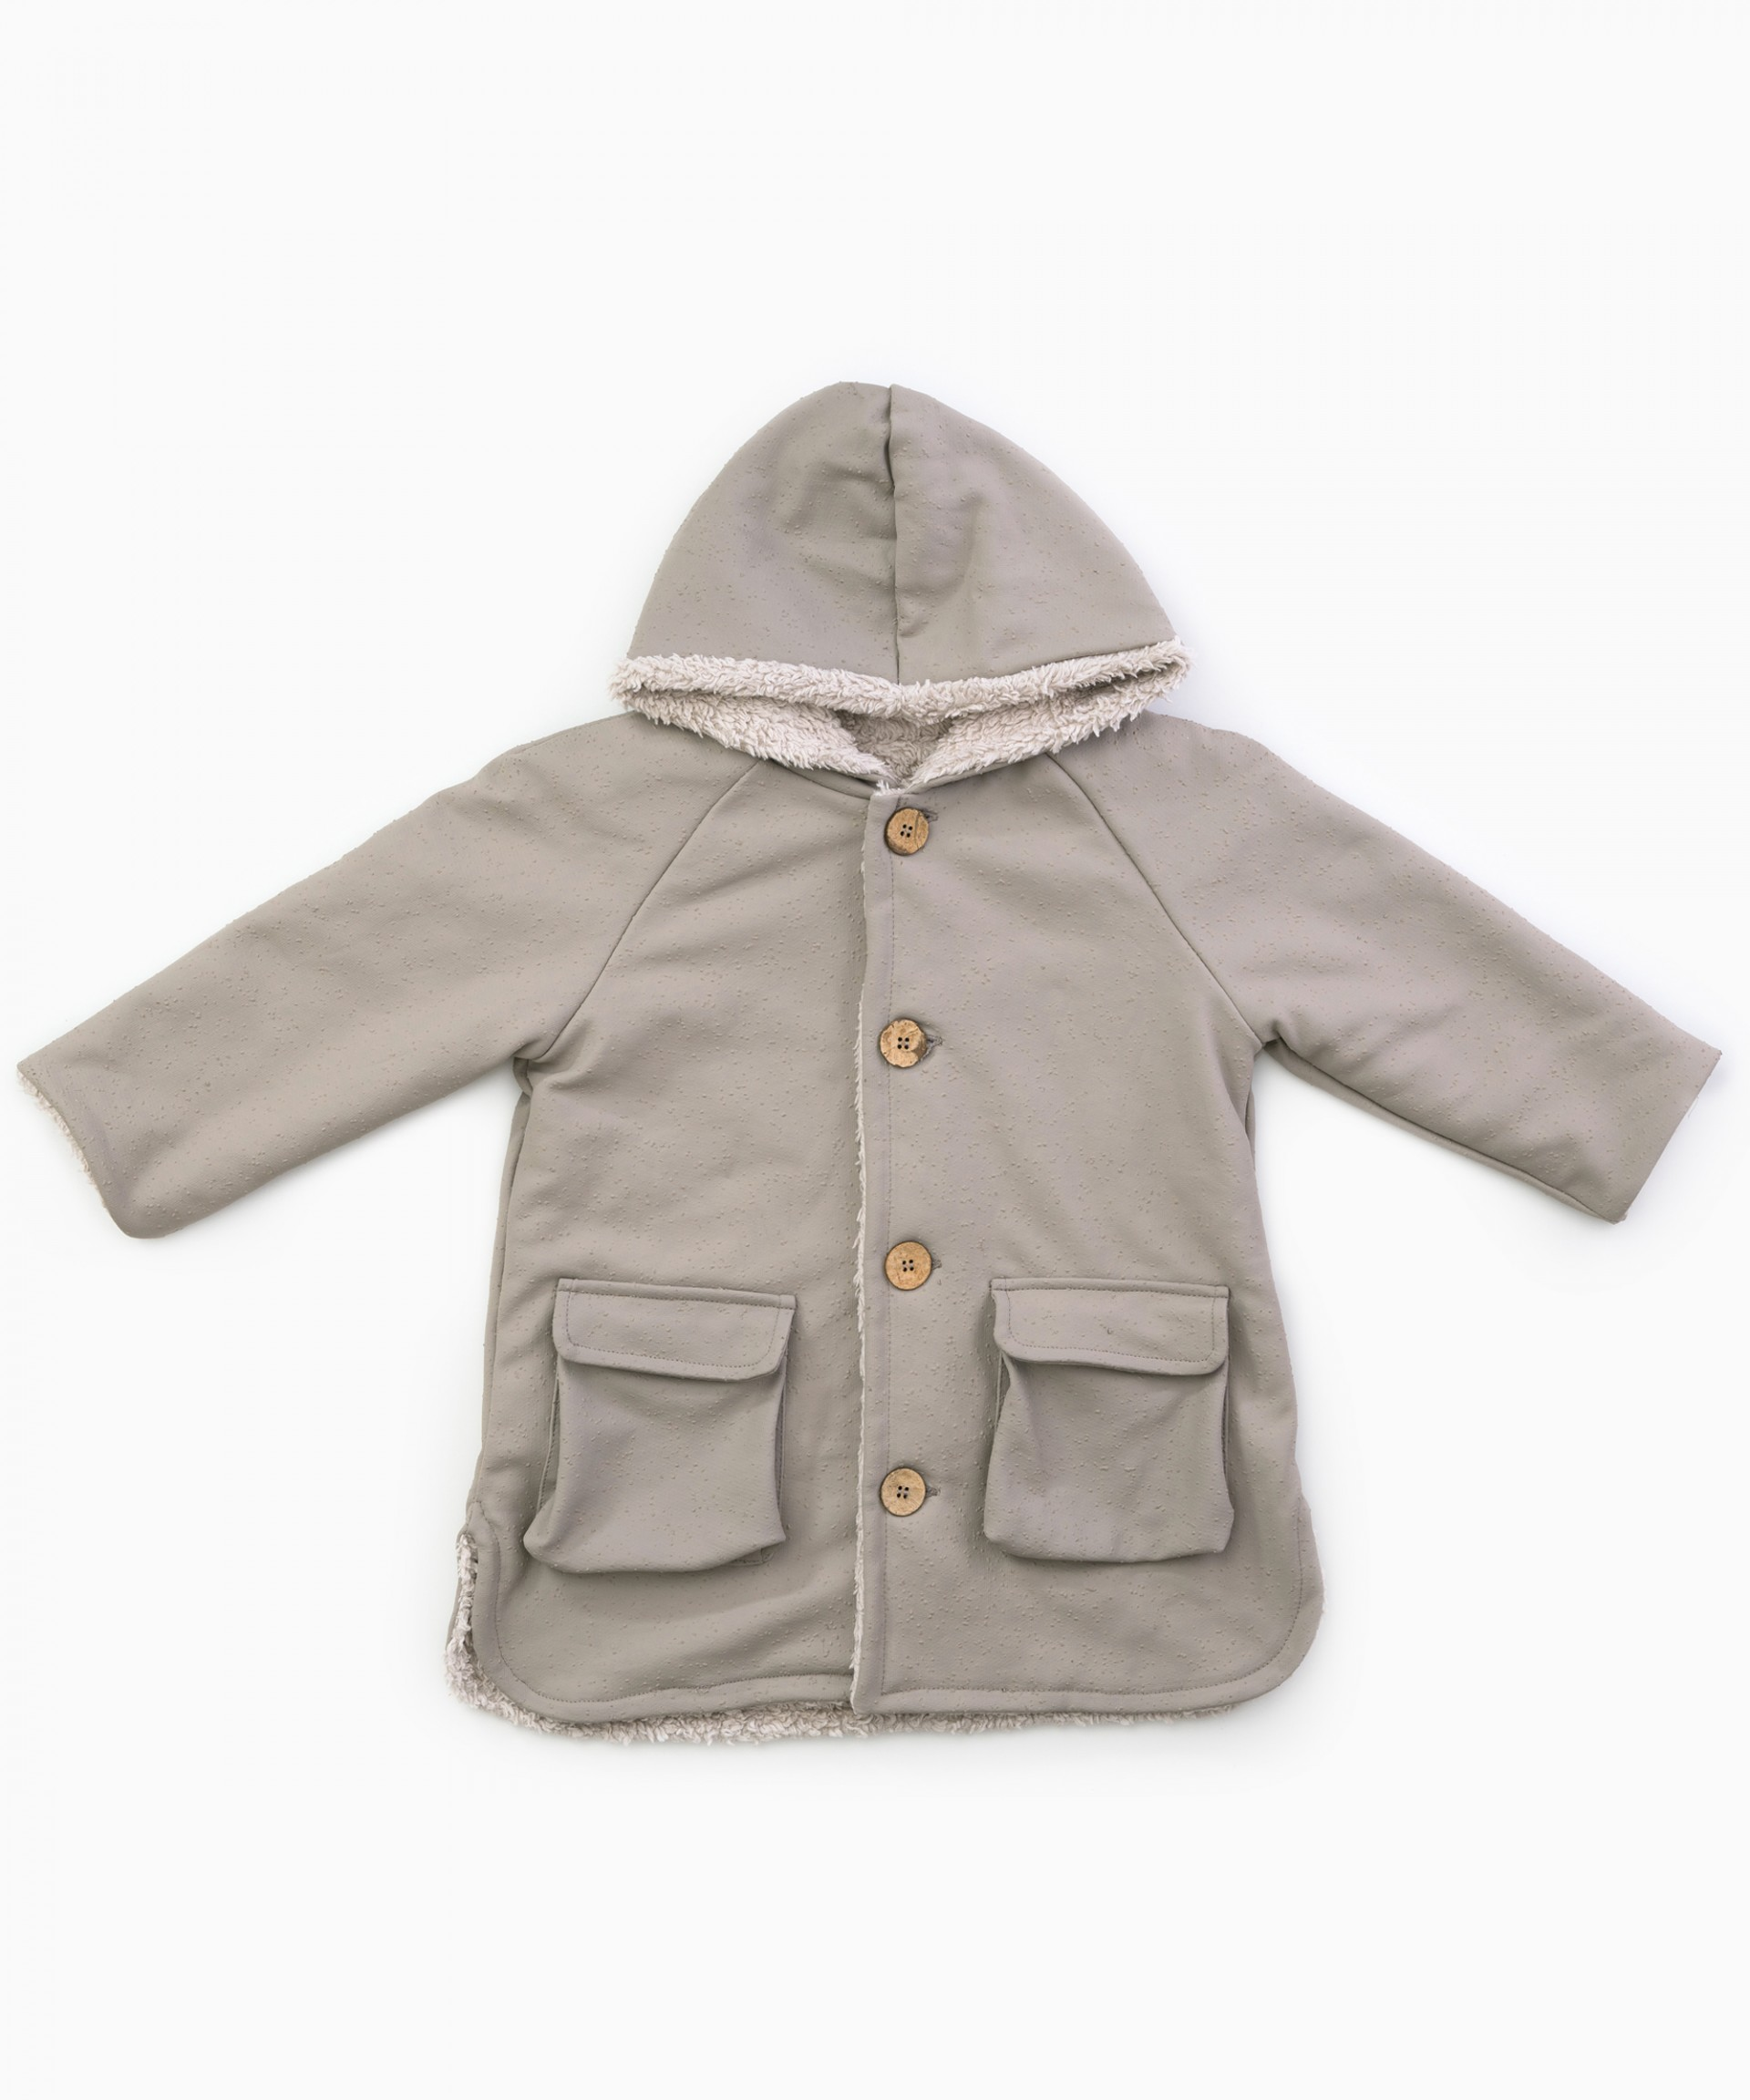 Waterproof  hooded jacket | Woodwork